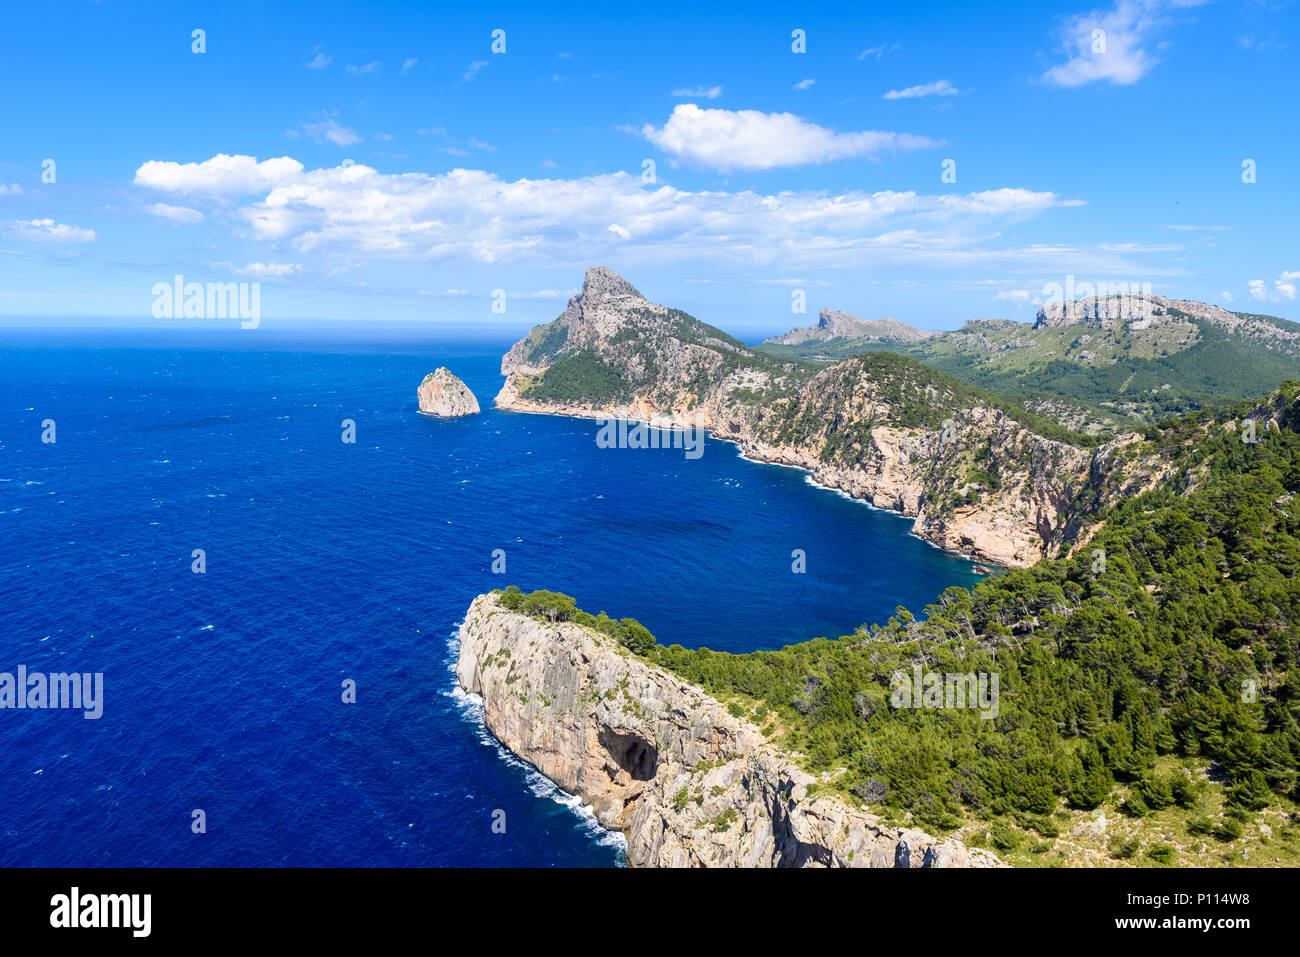 Cap de formentor - beaufitul coast of Mallorca, Spain - Europe - Stock Image